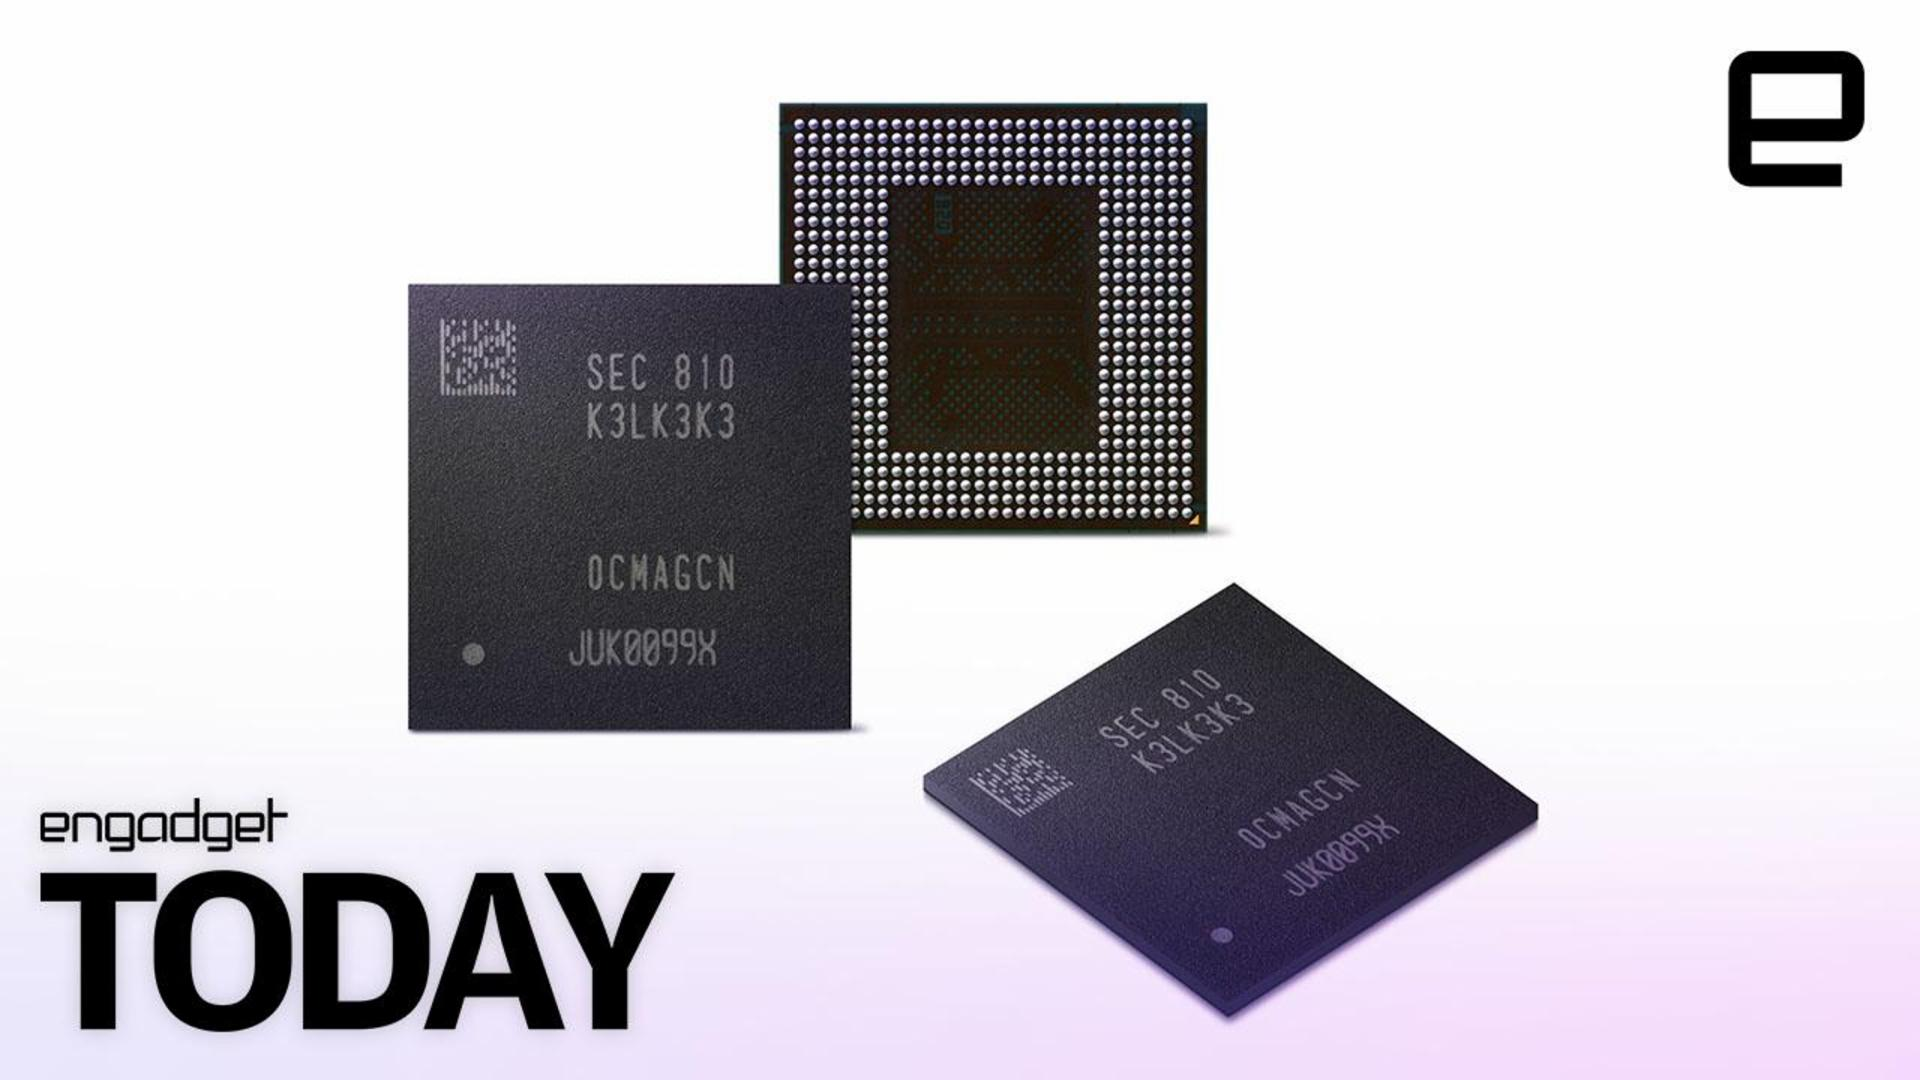 Samsung's new DRAM chip will make phones run faster and longer